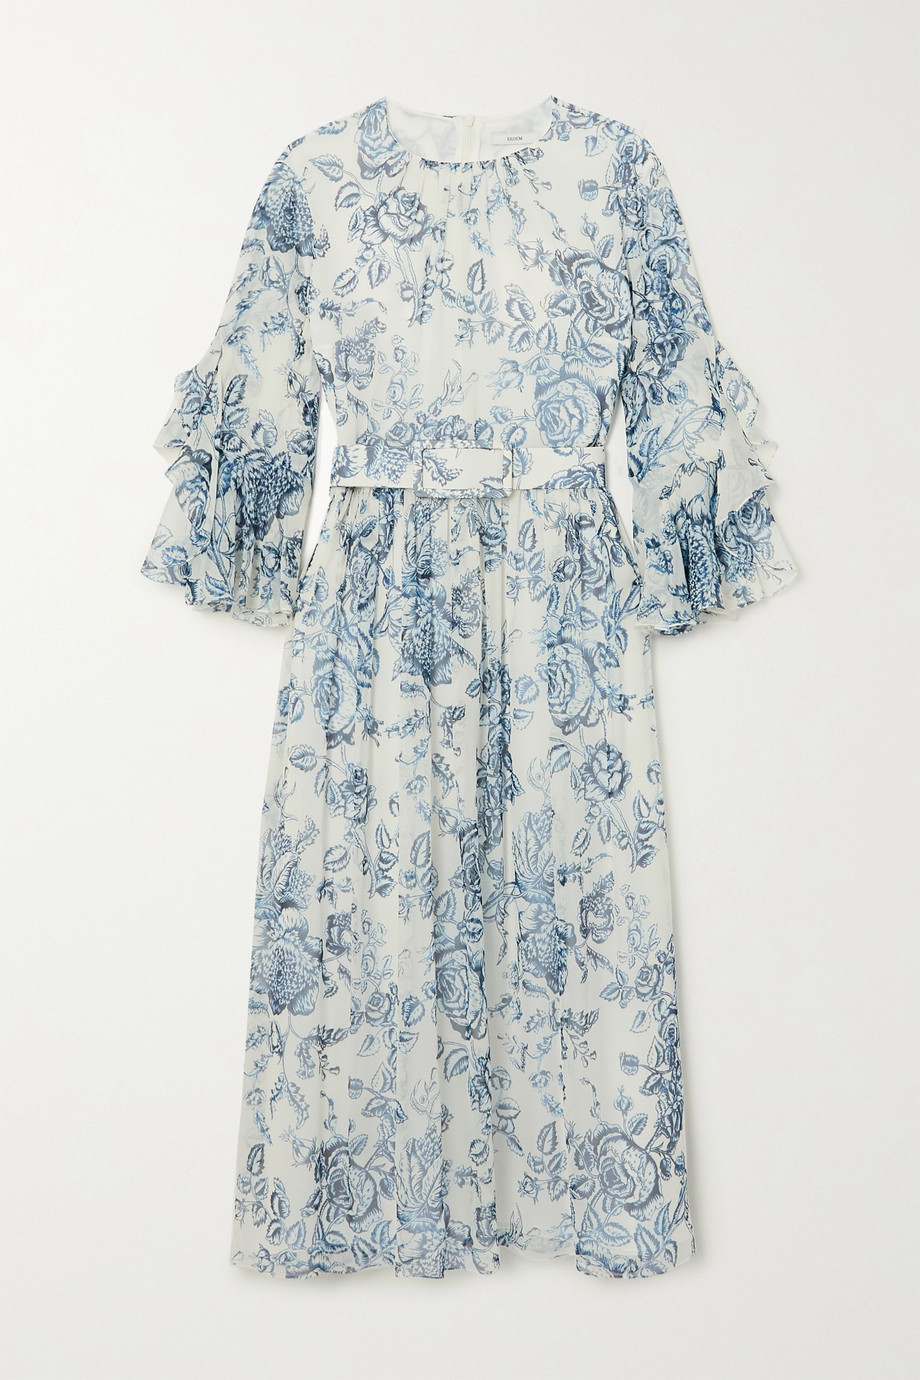 Erdem Adriana belted ruffled floral-print silk-voile midi dress